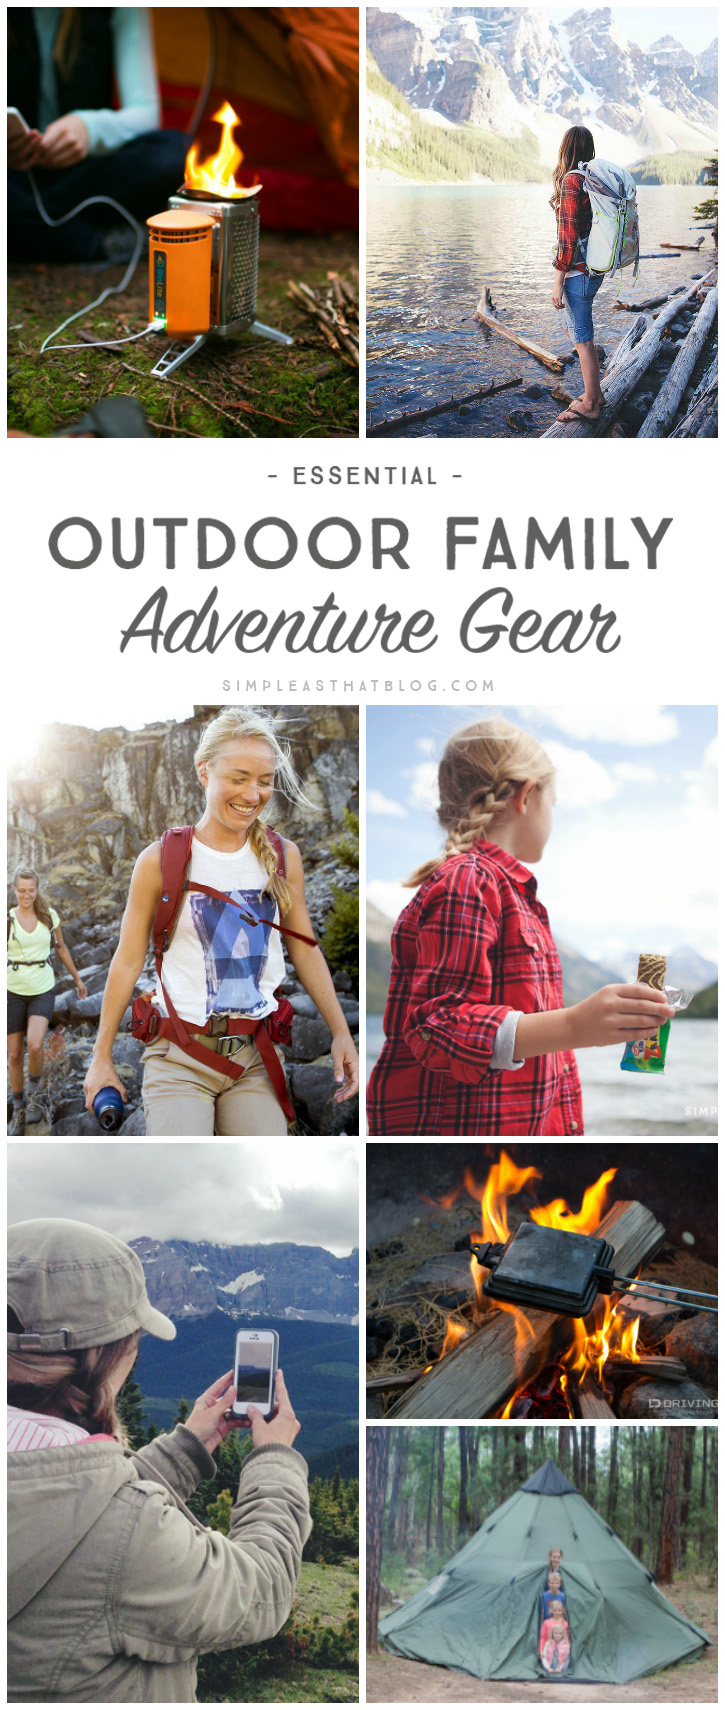 Essential Outdoor Family Adventure Gear